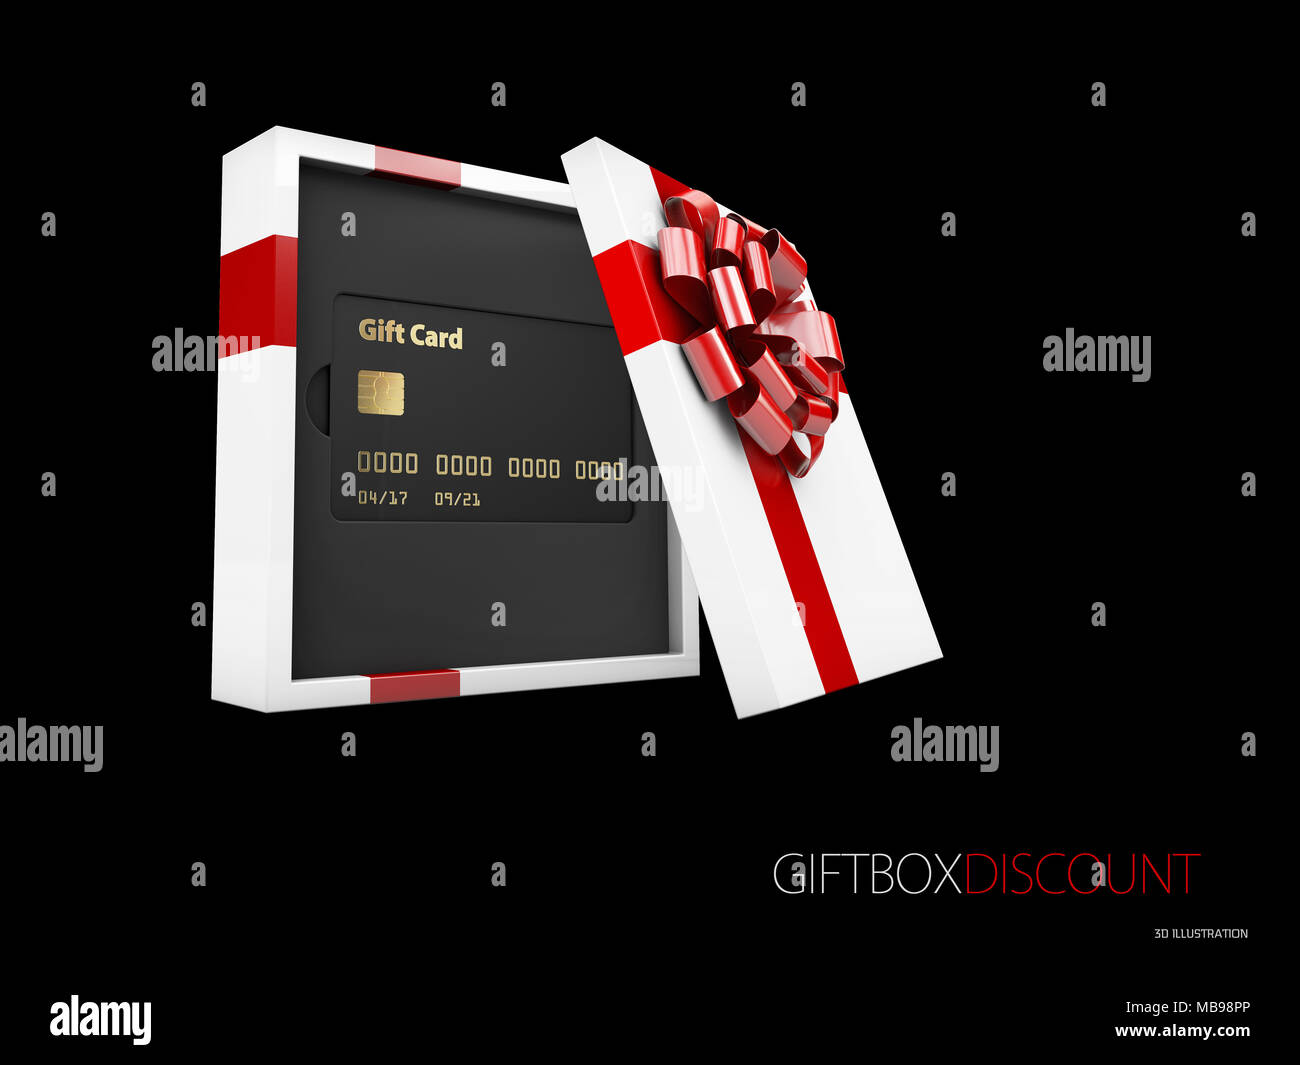 gift cards in the gift box 3d illustration gift or credit card